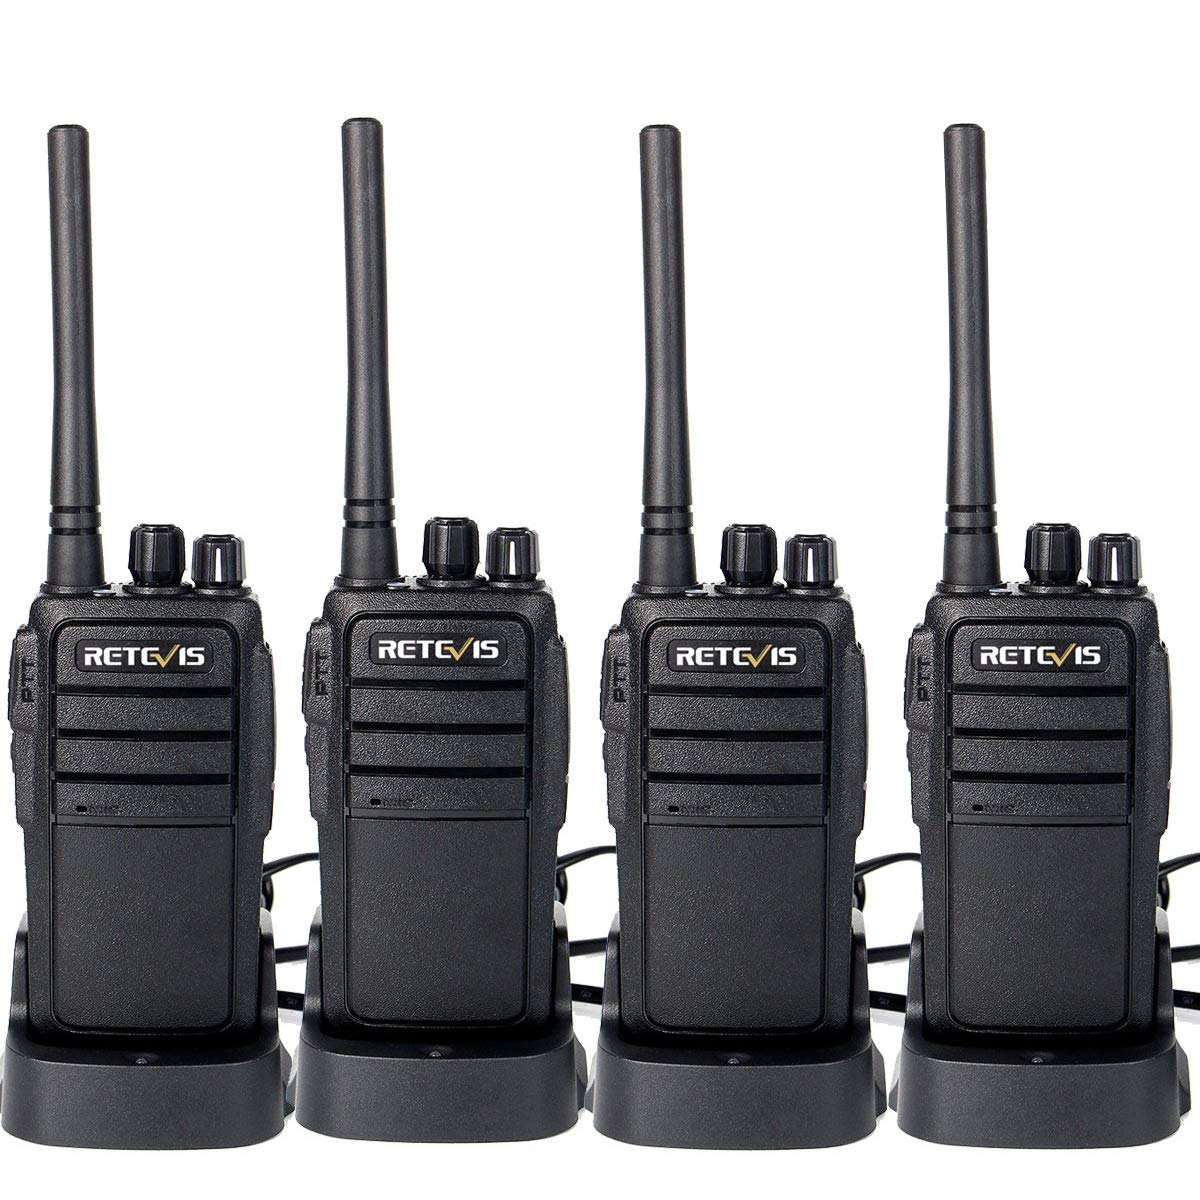 Retevis RT21 Walkie Talkies Rechargeable 16 Channels FRS License-Free 2 Way Radios(4 Pack) by Retevis